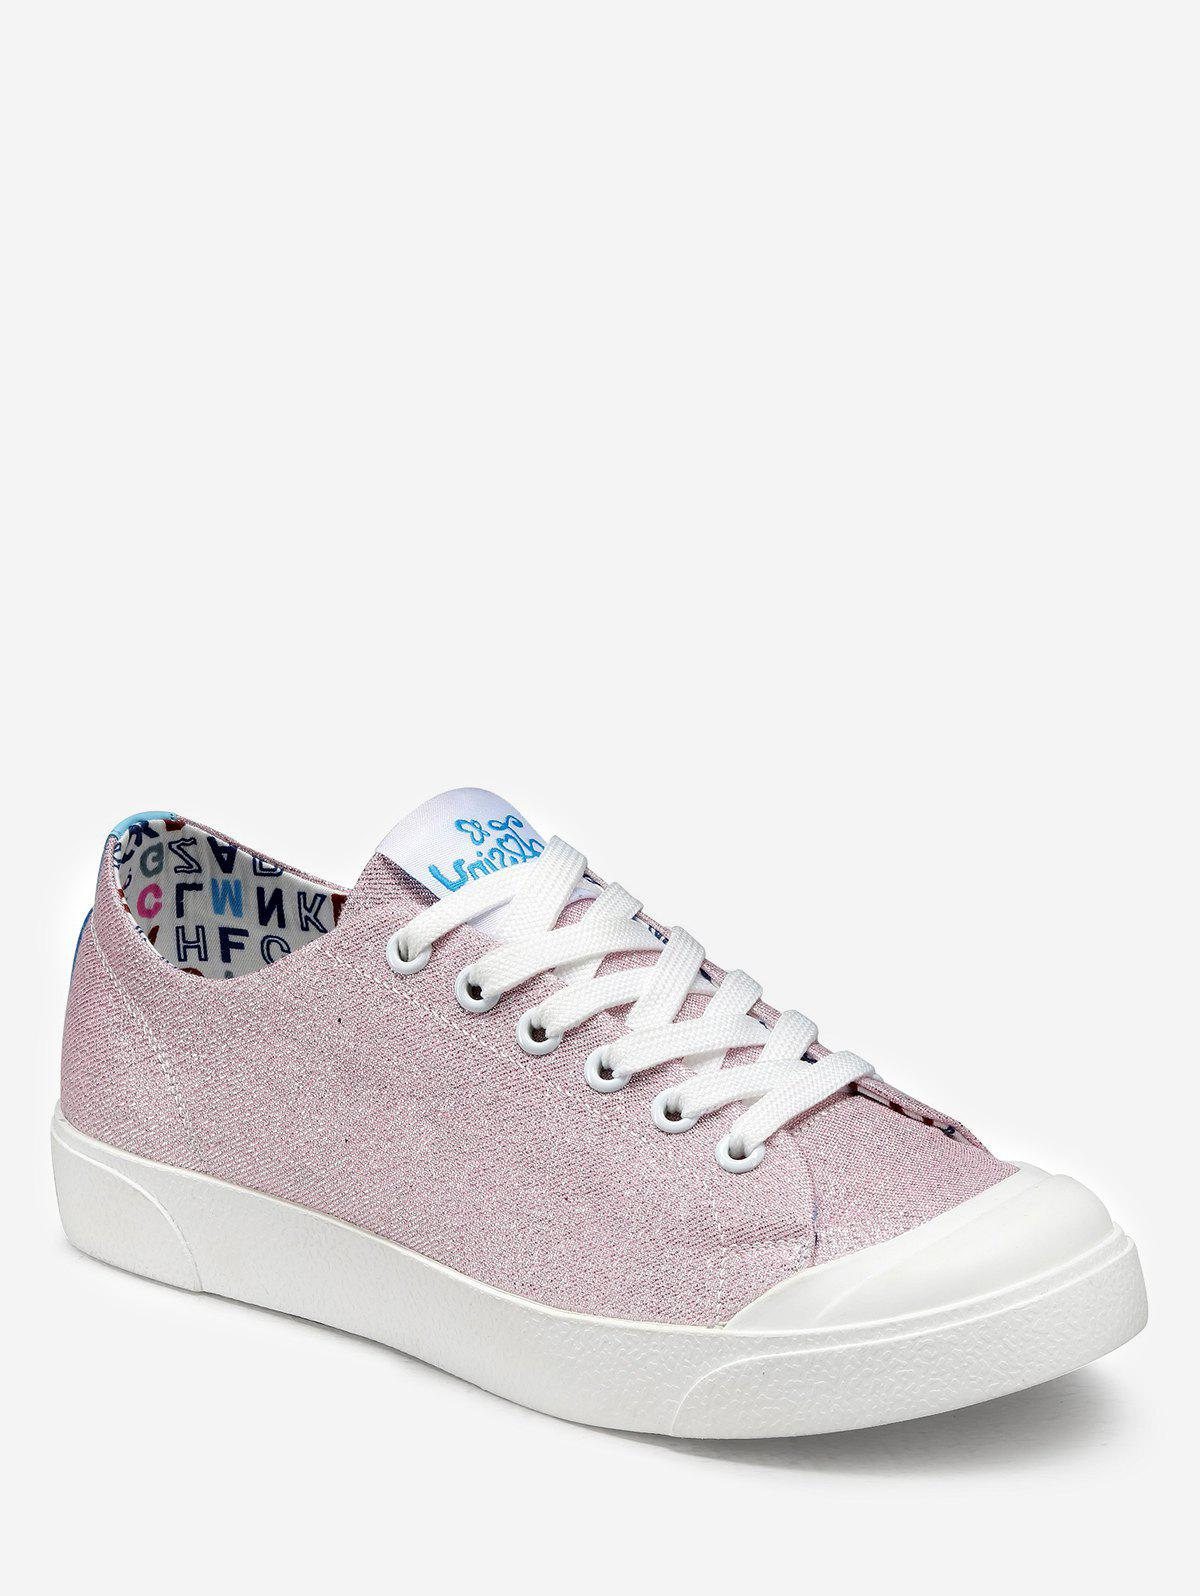 Discount Glitter Lace Up Leisure Sneakers